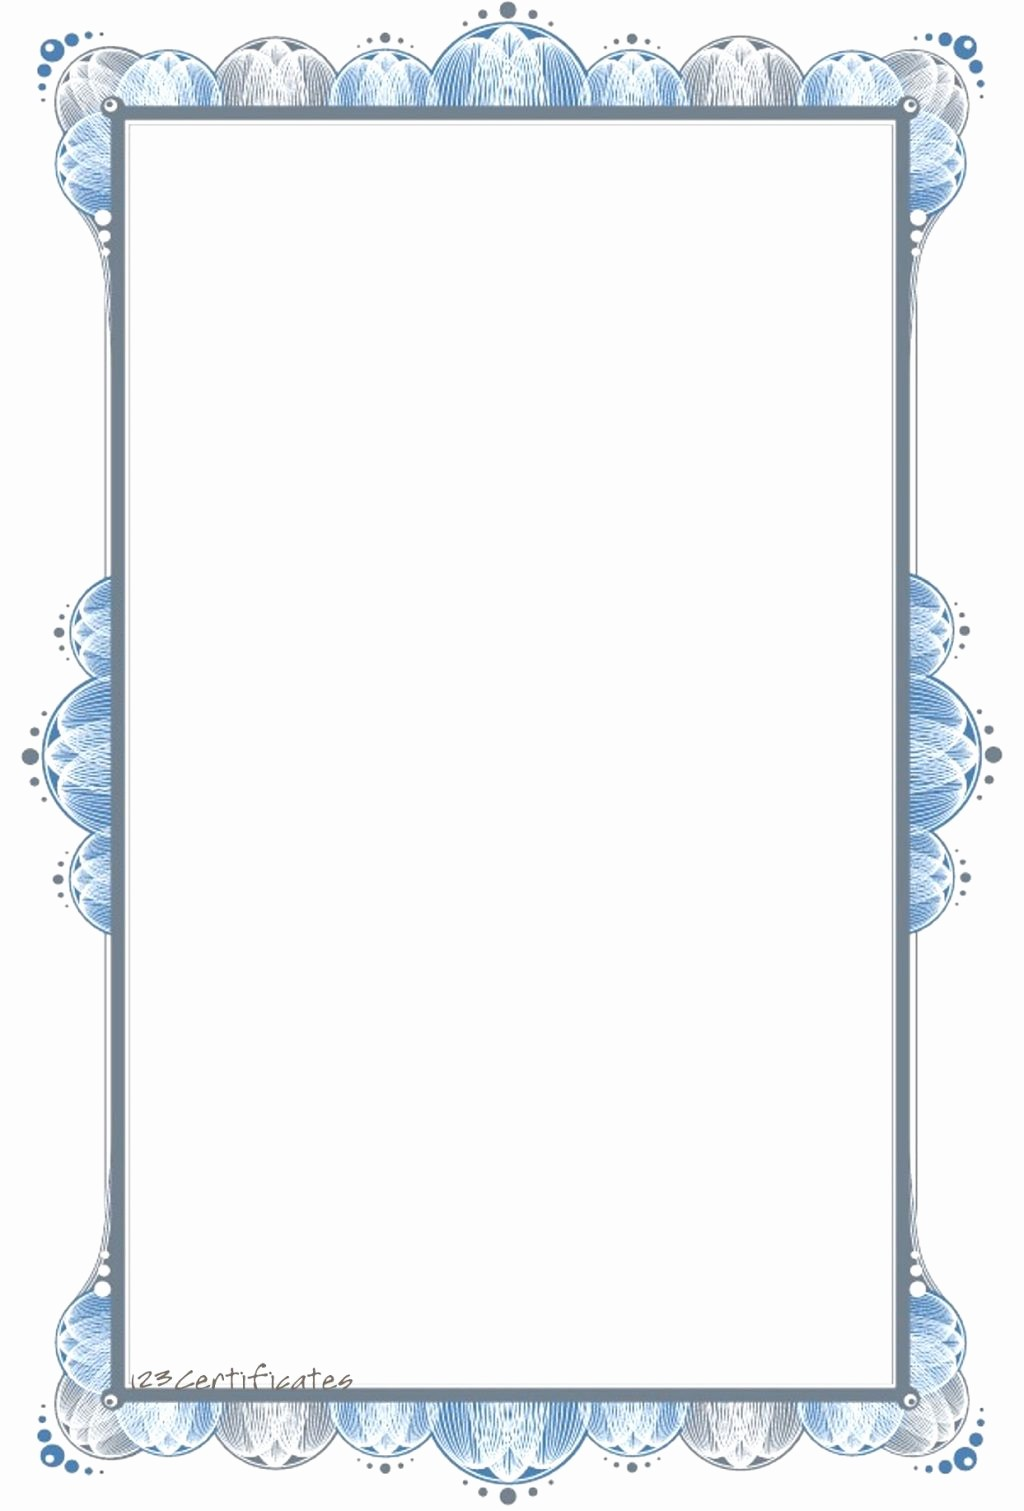 Certificate Border Template for Word Fresh Portrait Certificate Border Templates for Word Clipart